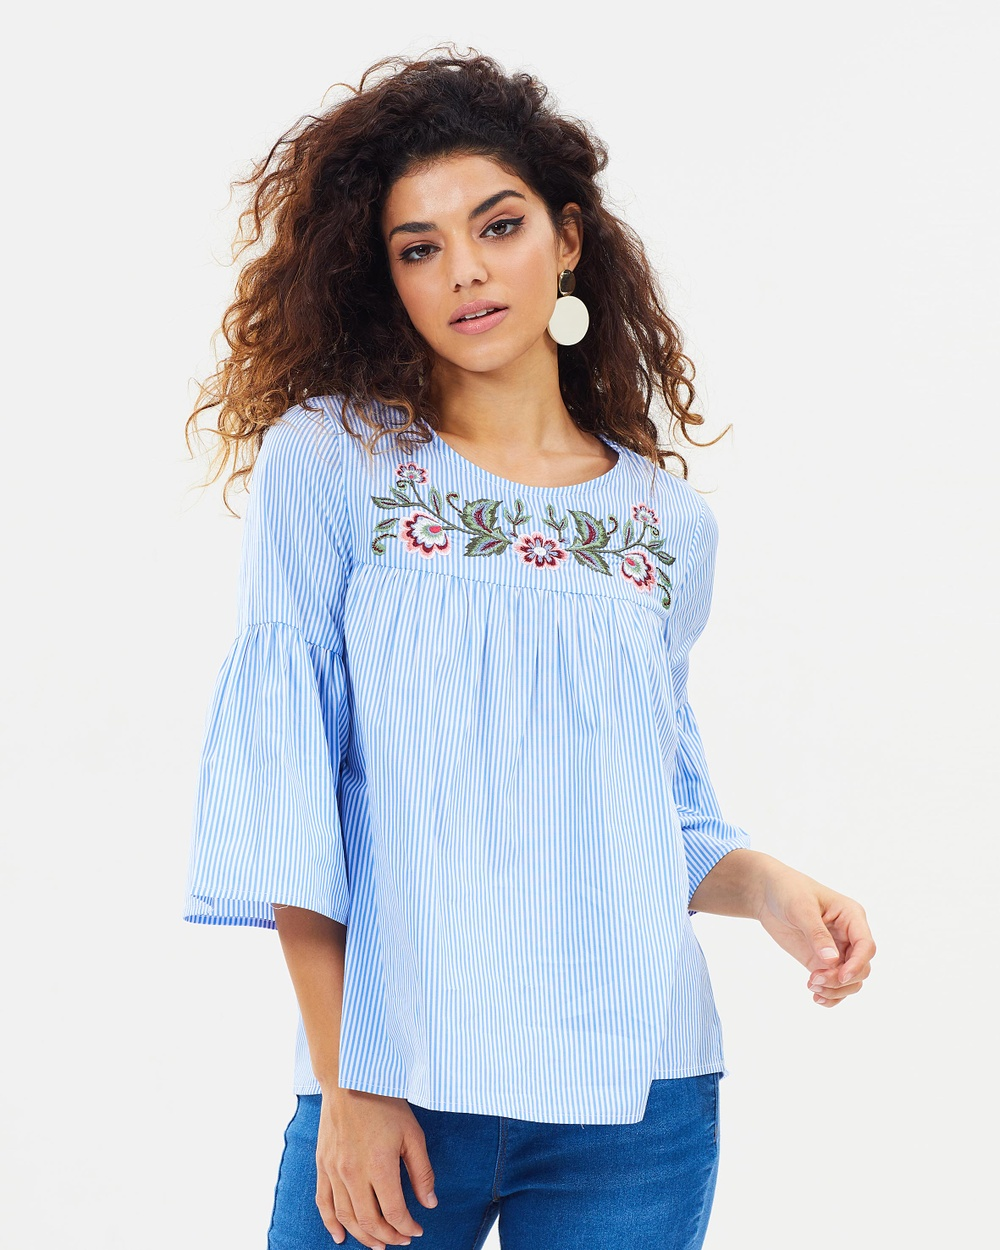 DP Petite Stripe Embroidered Yoke Top Tops Chambray Stripe Embroidered Yoke Top